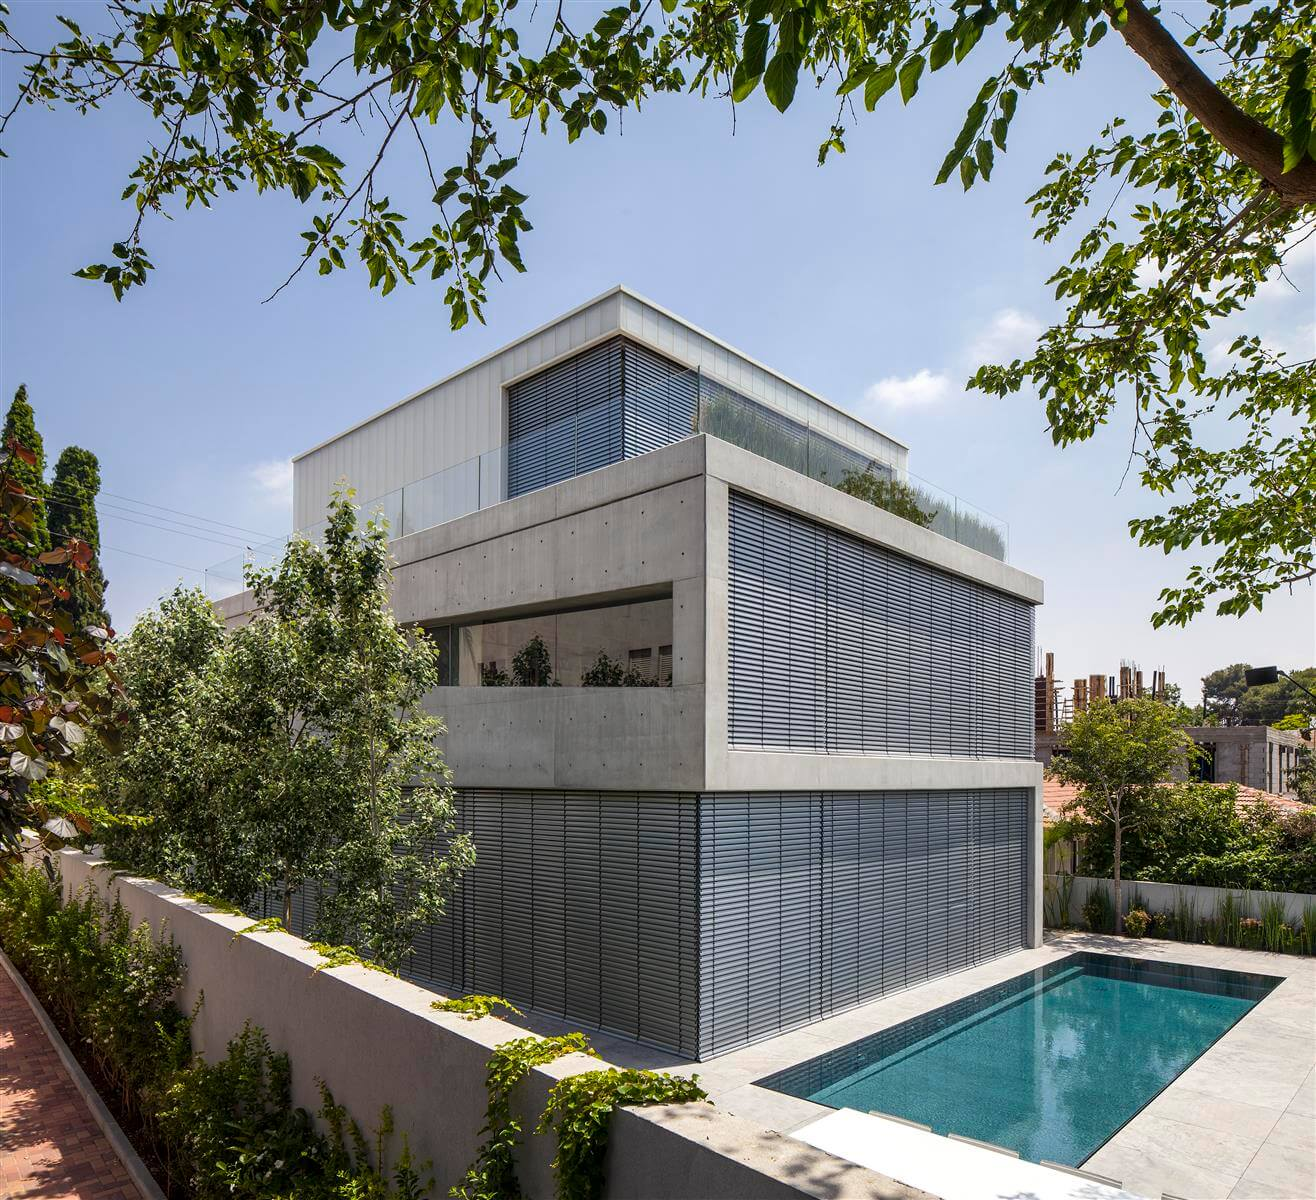 The Concrete Cut House in Ramat Gan by Pitsou Kedem Architects-12